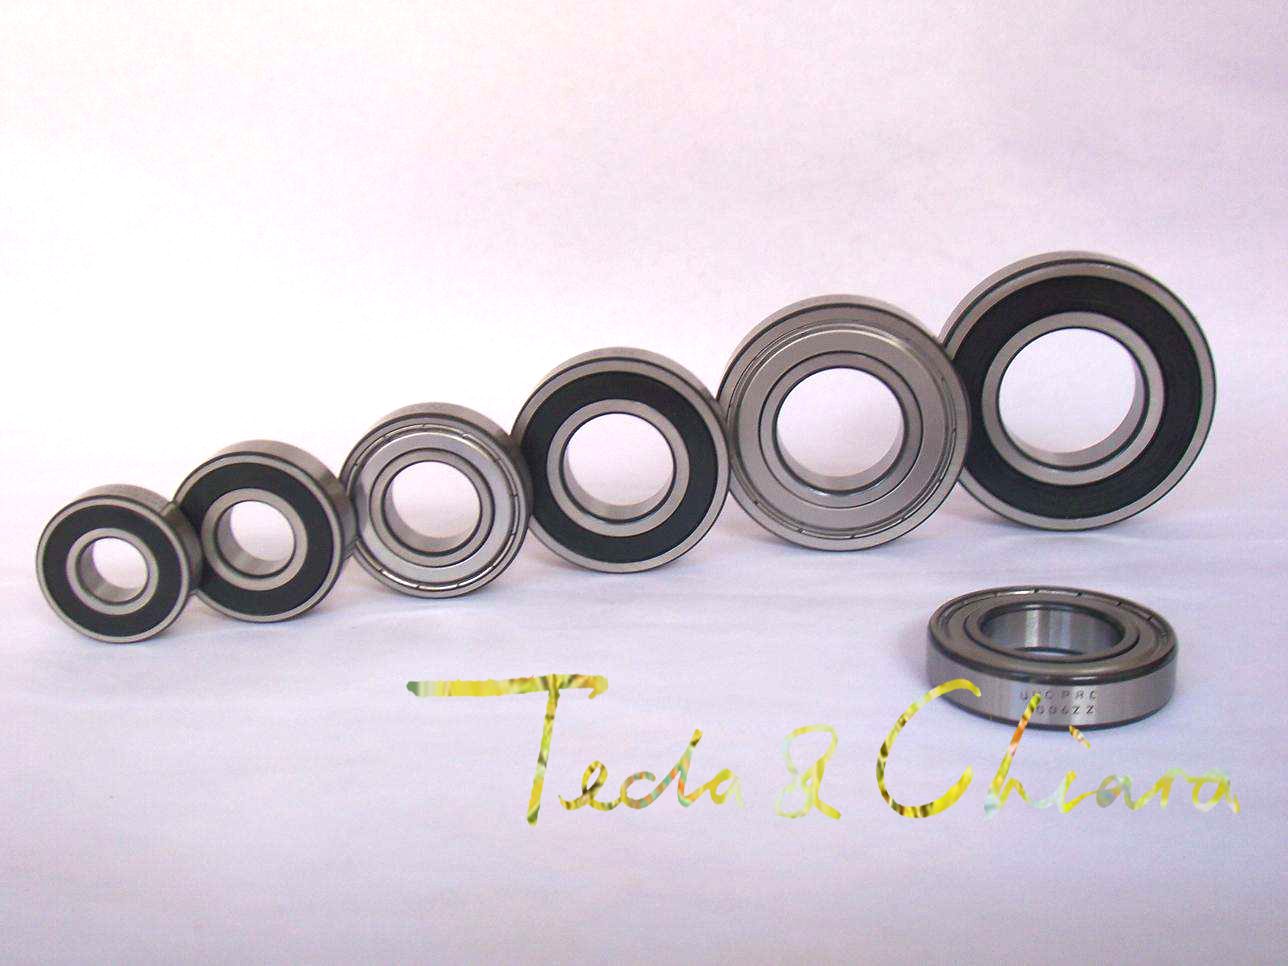 6707 6707ZZ <font><b>6707RS</b></font> 6707-2Z 6707Z 6707-2RS ZZ RS RZ 2RZ Deep Groove Ball Bearings 35 x 44 x 5mm image